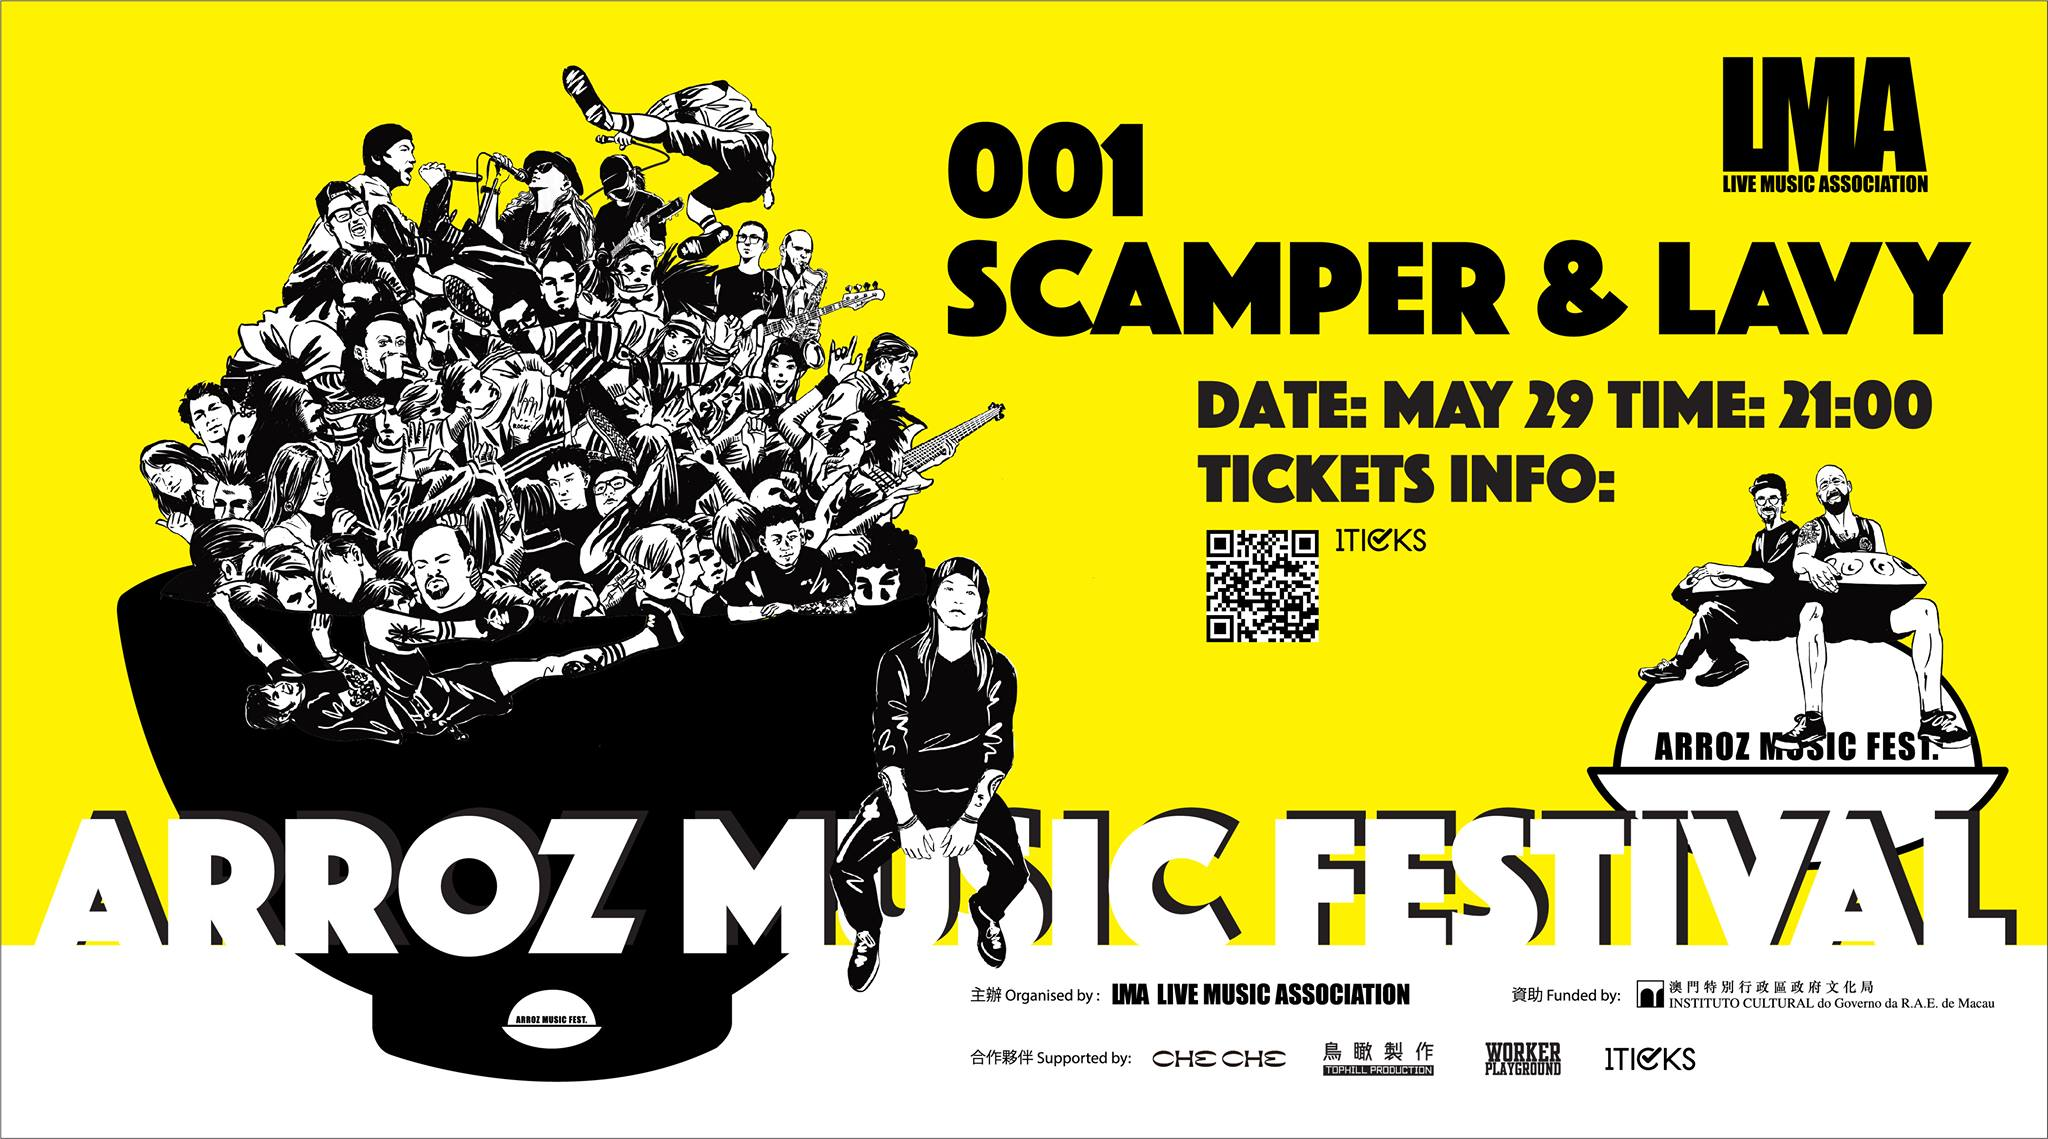 Lavy and Scamper Arroz Music Festival at LMA this weekend macau